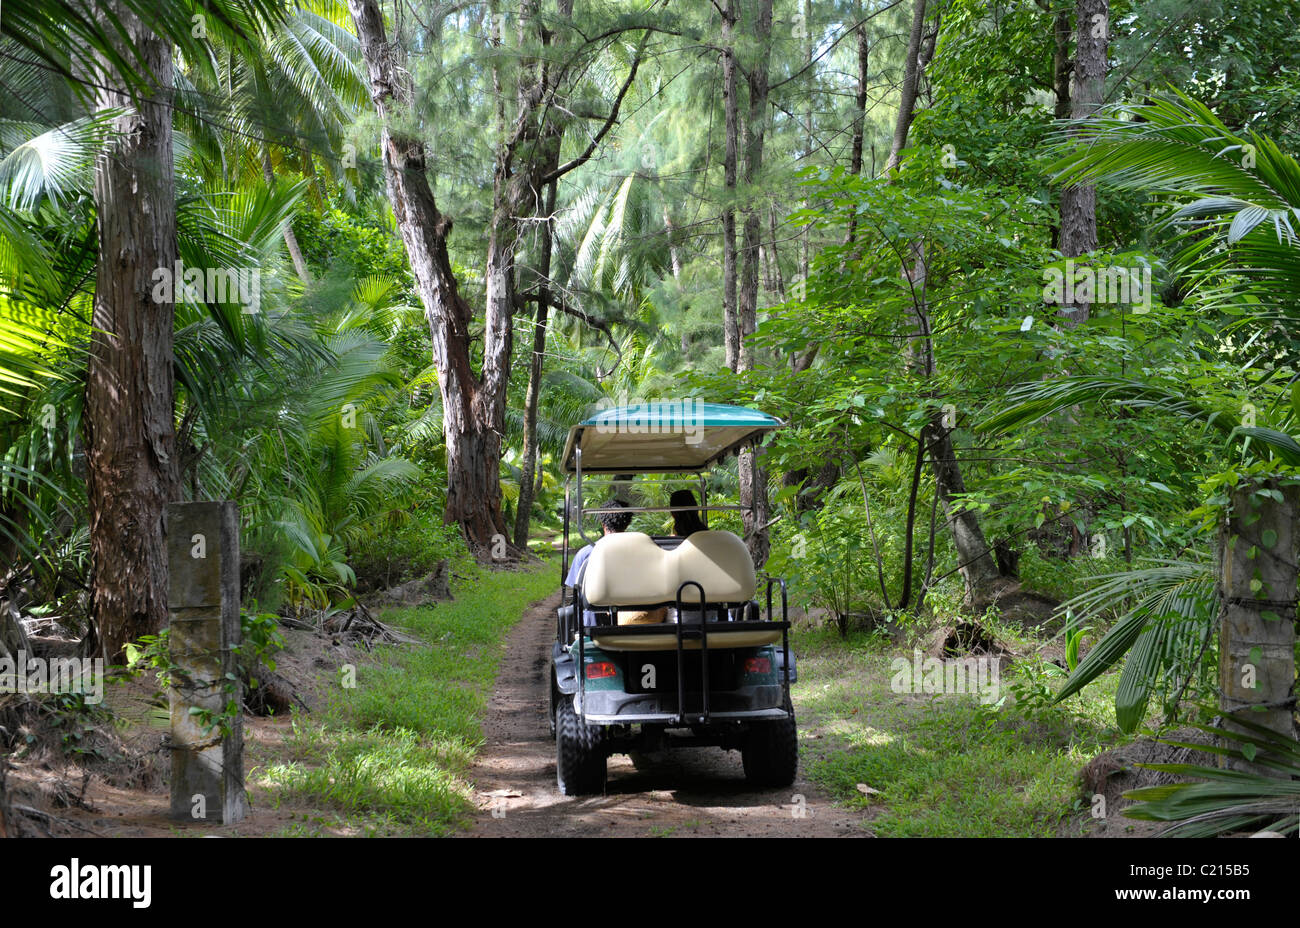 Golf cart in coconut grove on Desroches Island, Seychelles - Stock Image